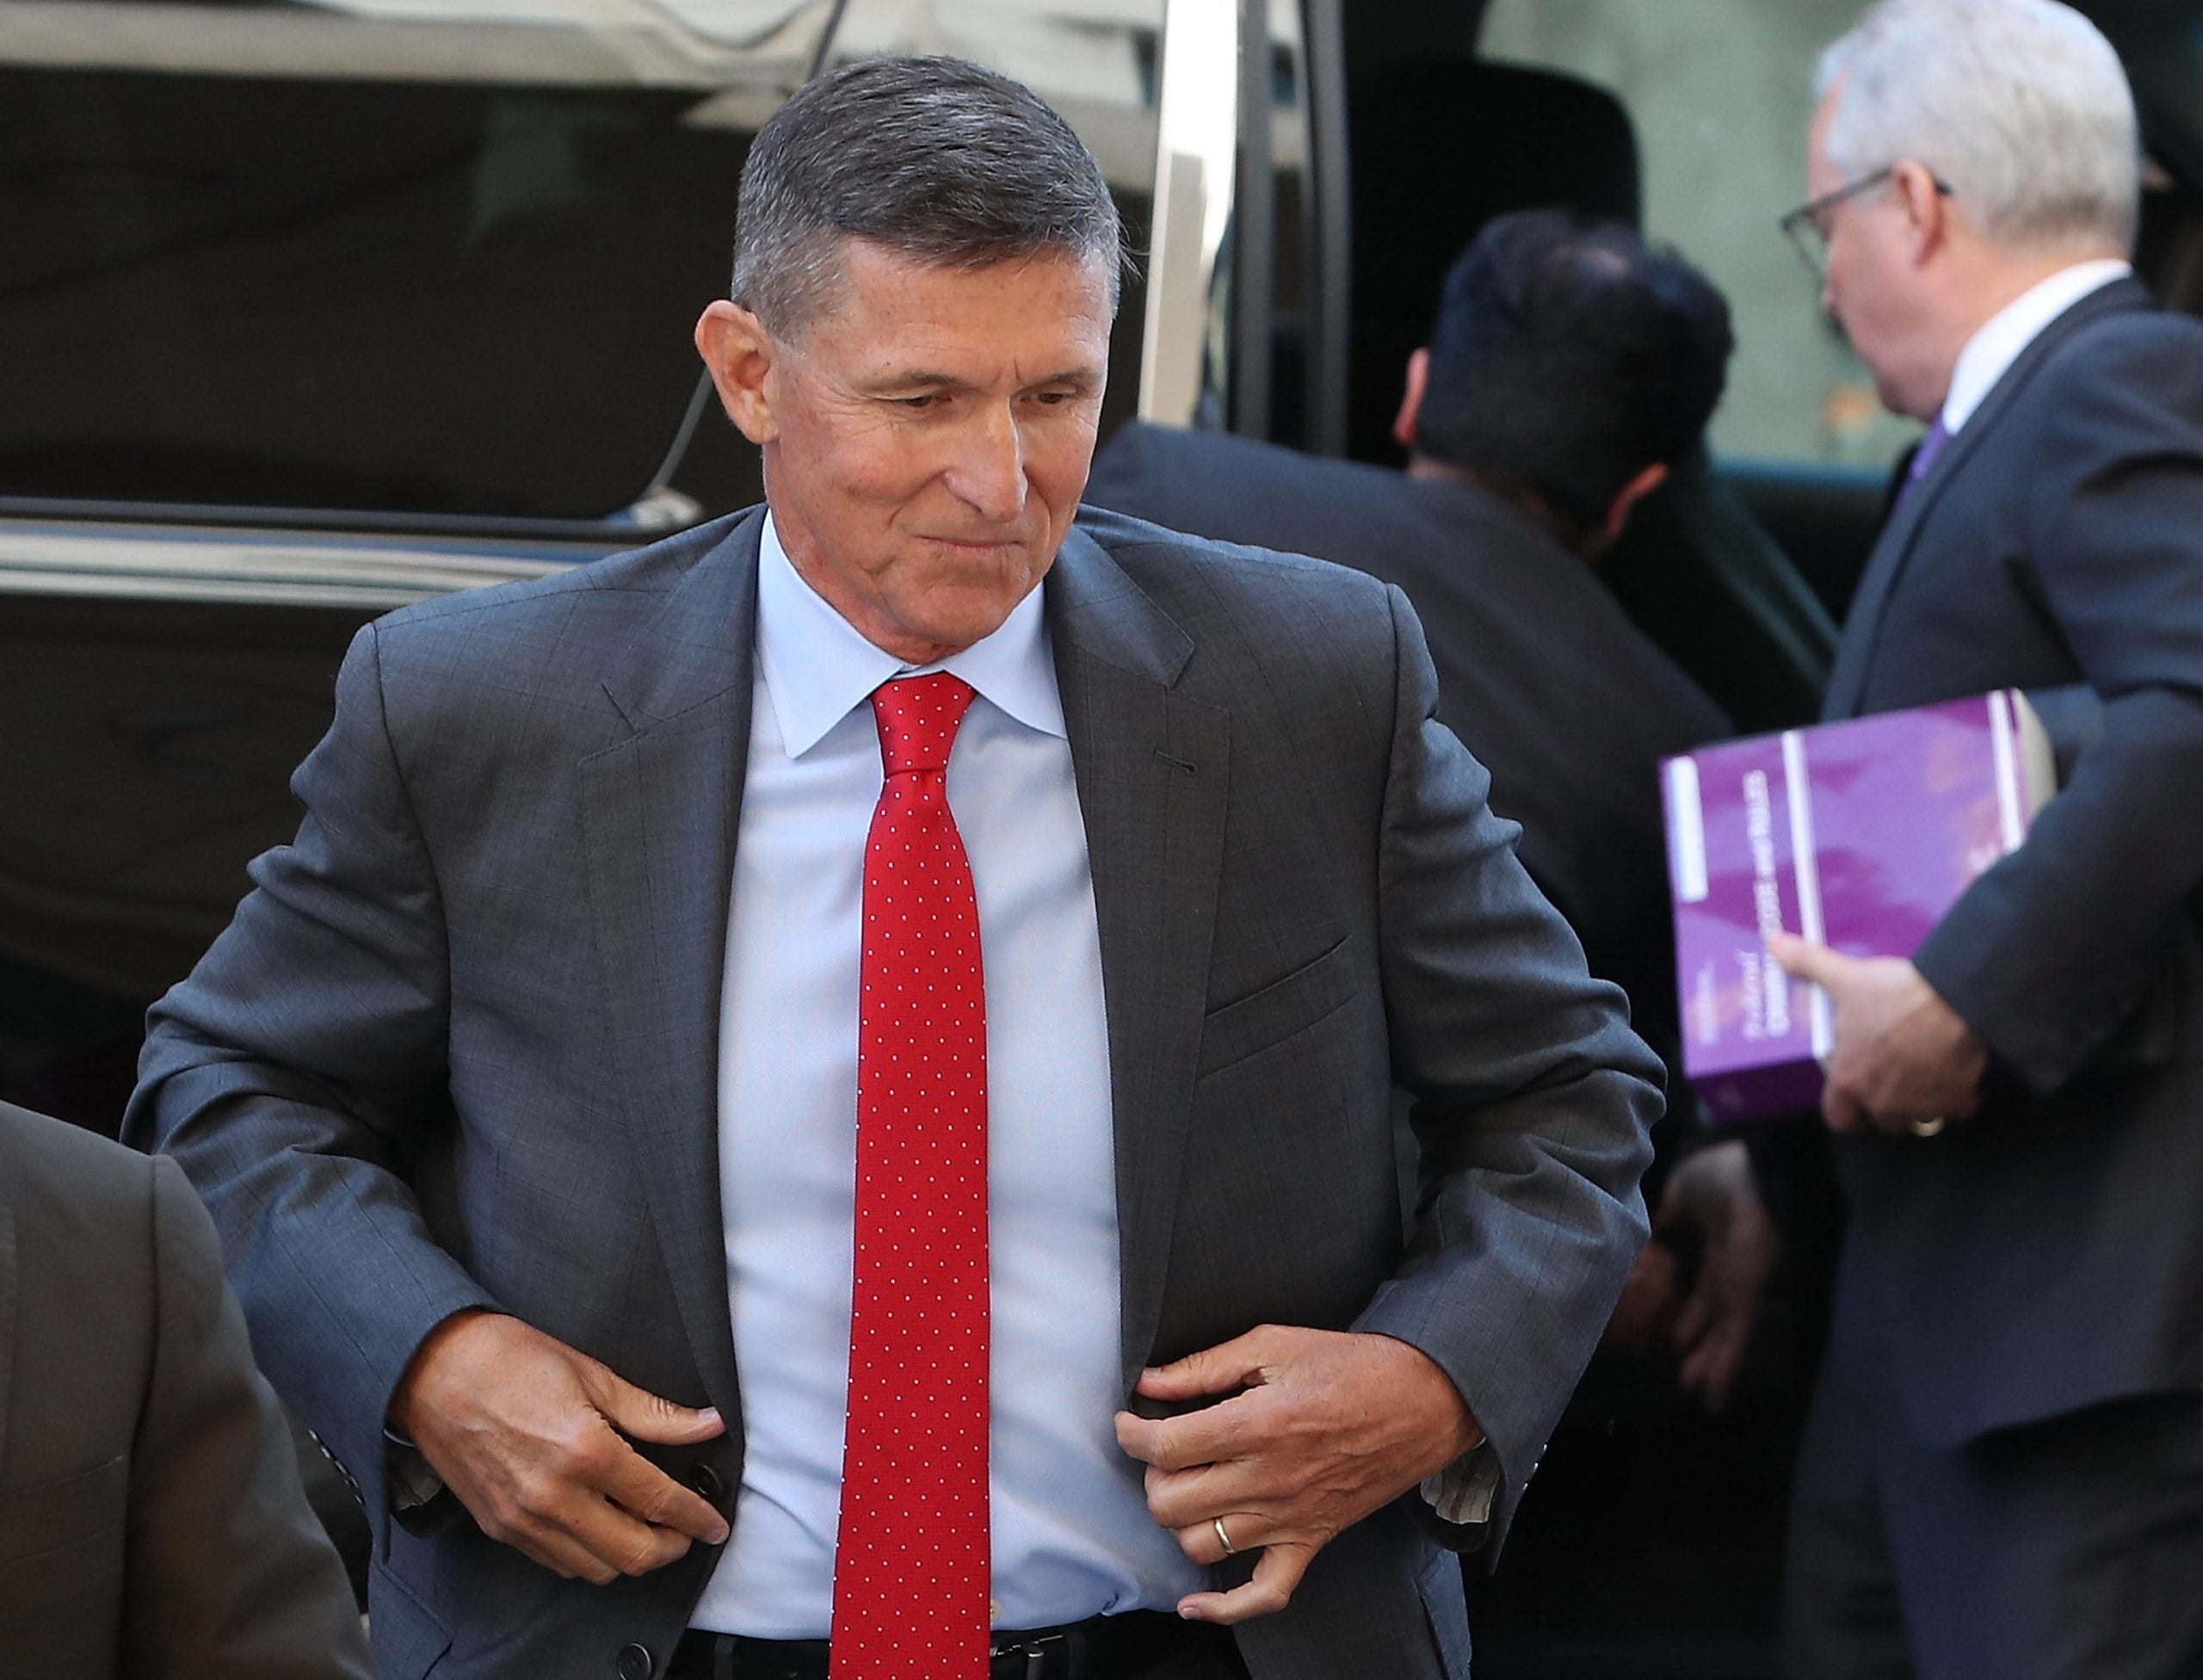 Michael Flynn arrives at courthouse